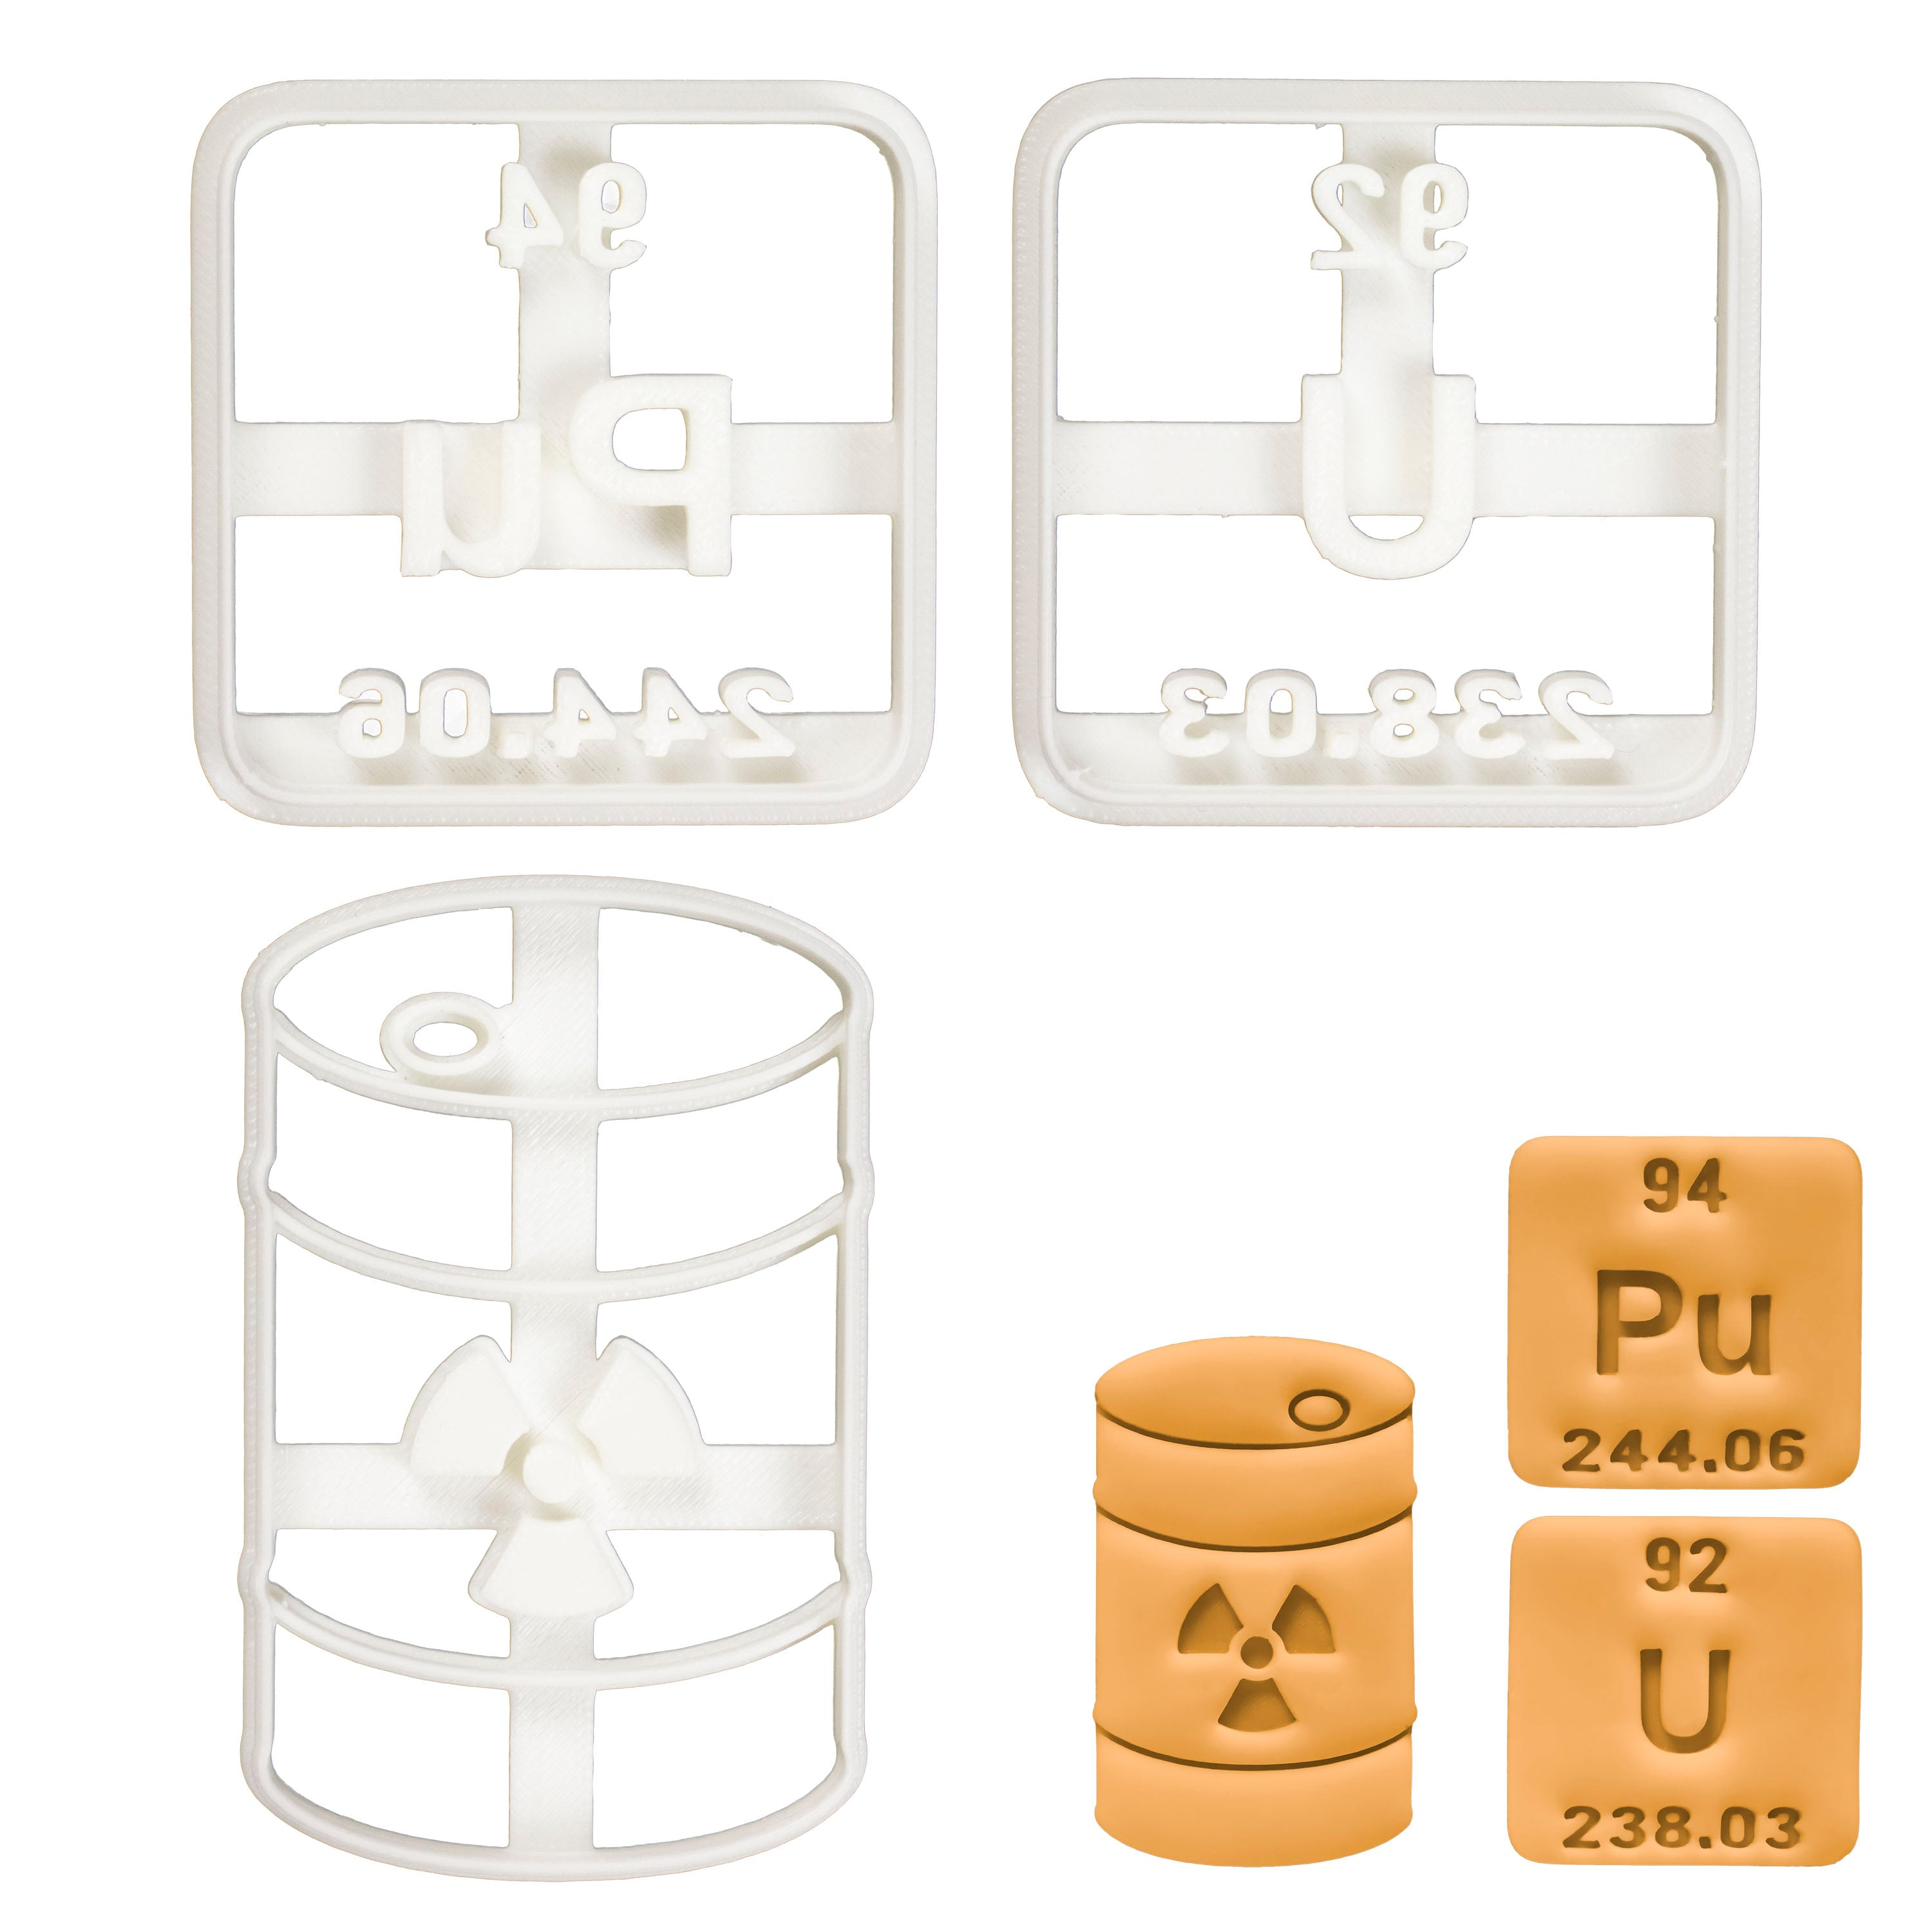 Set of 3 Radioactive themed cookie cutters (Designs: Nuclear Waste, Plutonium, Uranium periodic table element)